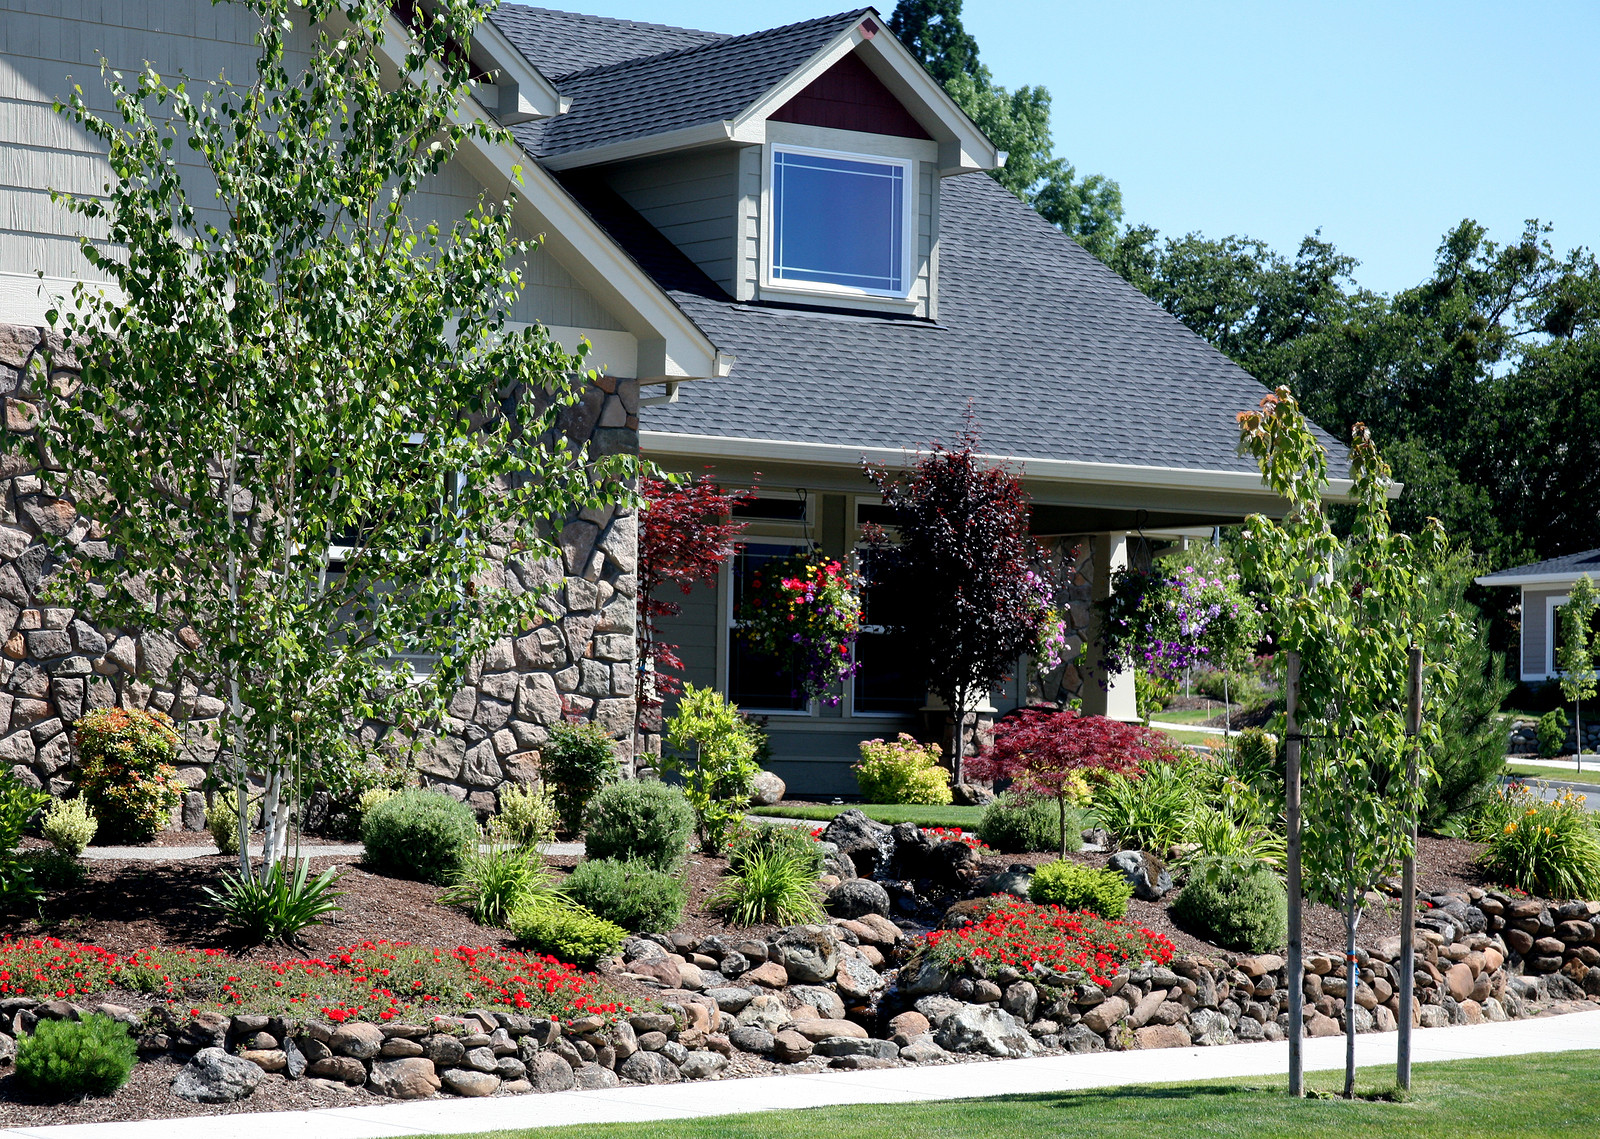 Residential Landscaping (Image 6 of 8)